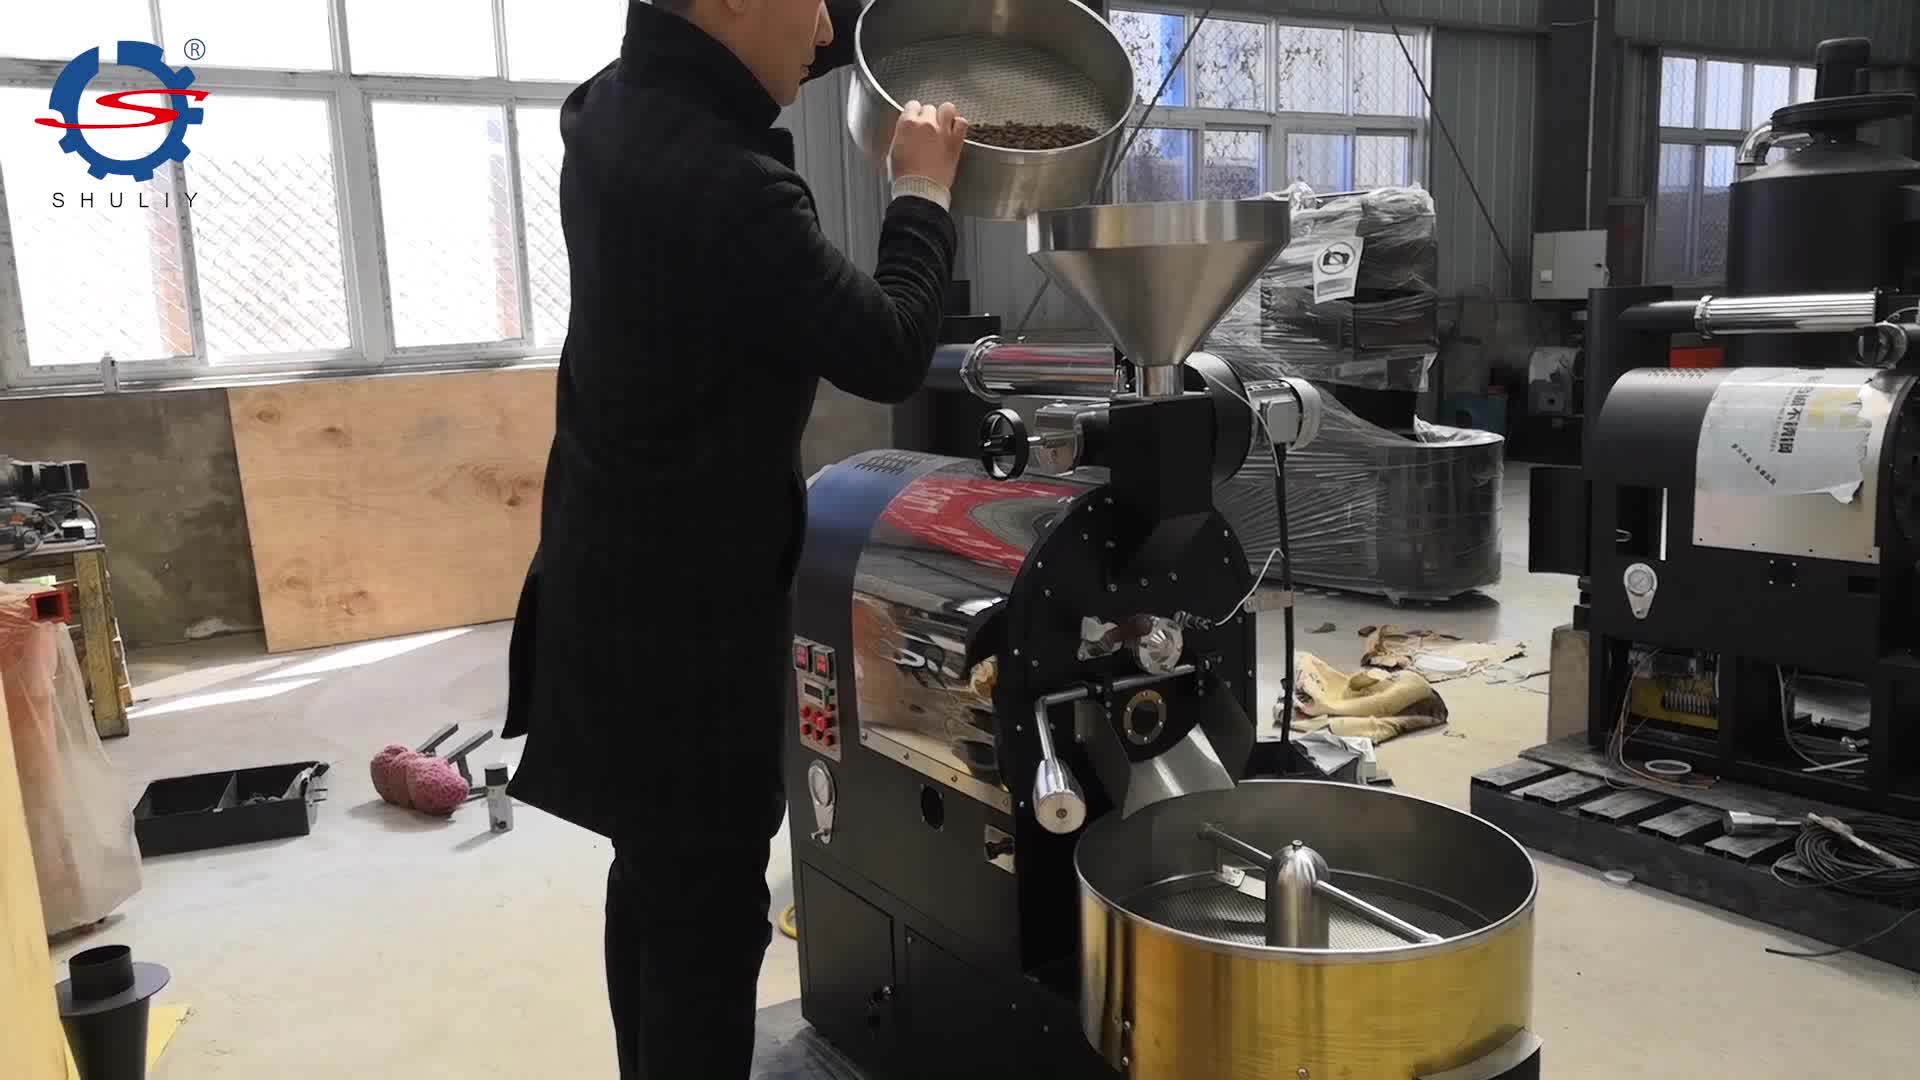 1kg coffee bean roasting machine / drum coffee roaster for Home & Small Cafe